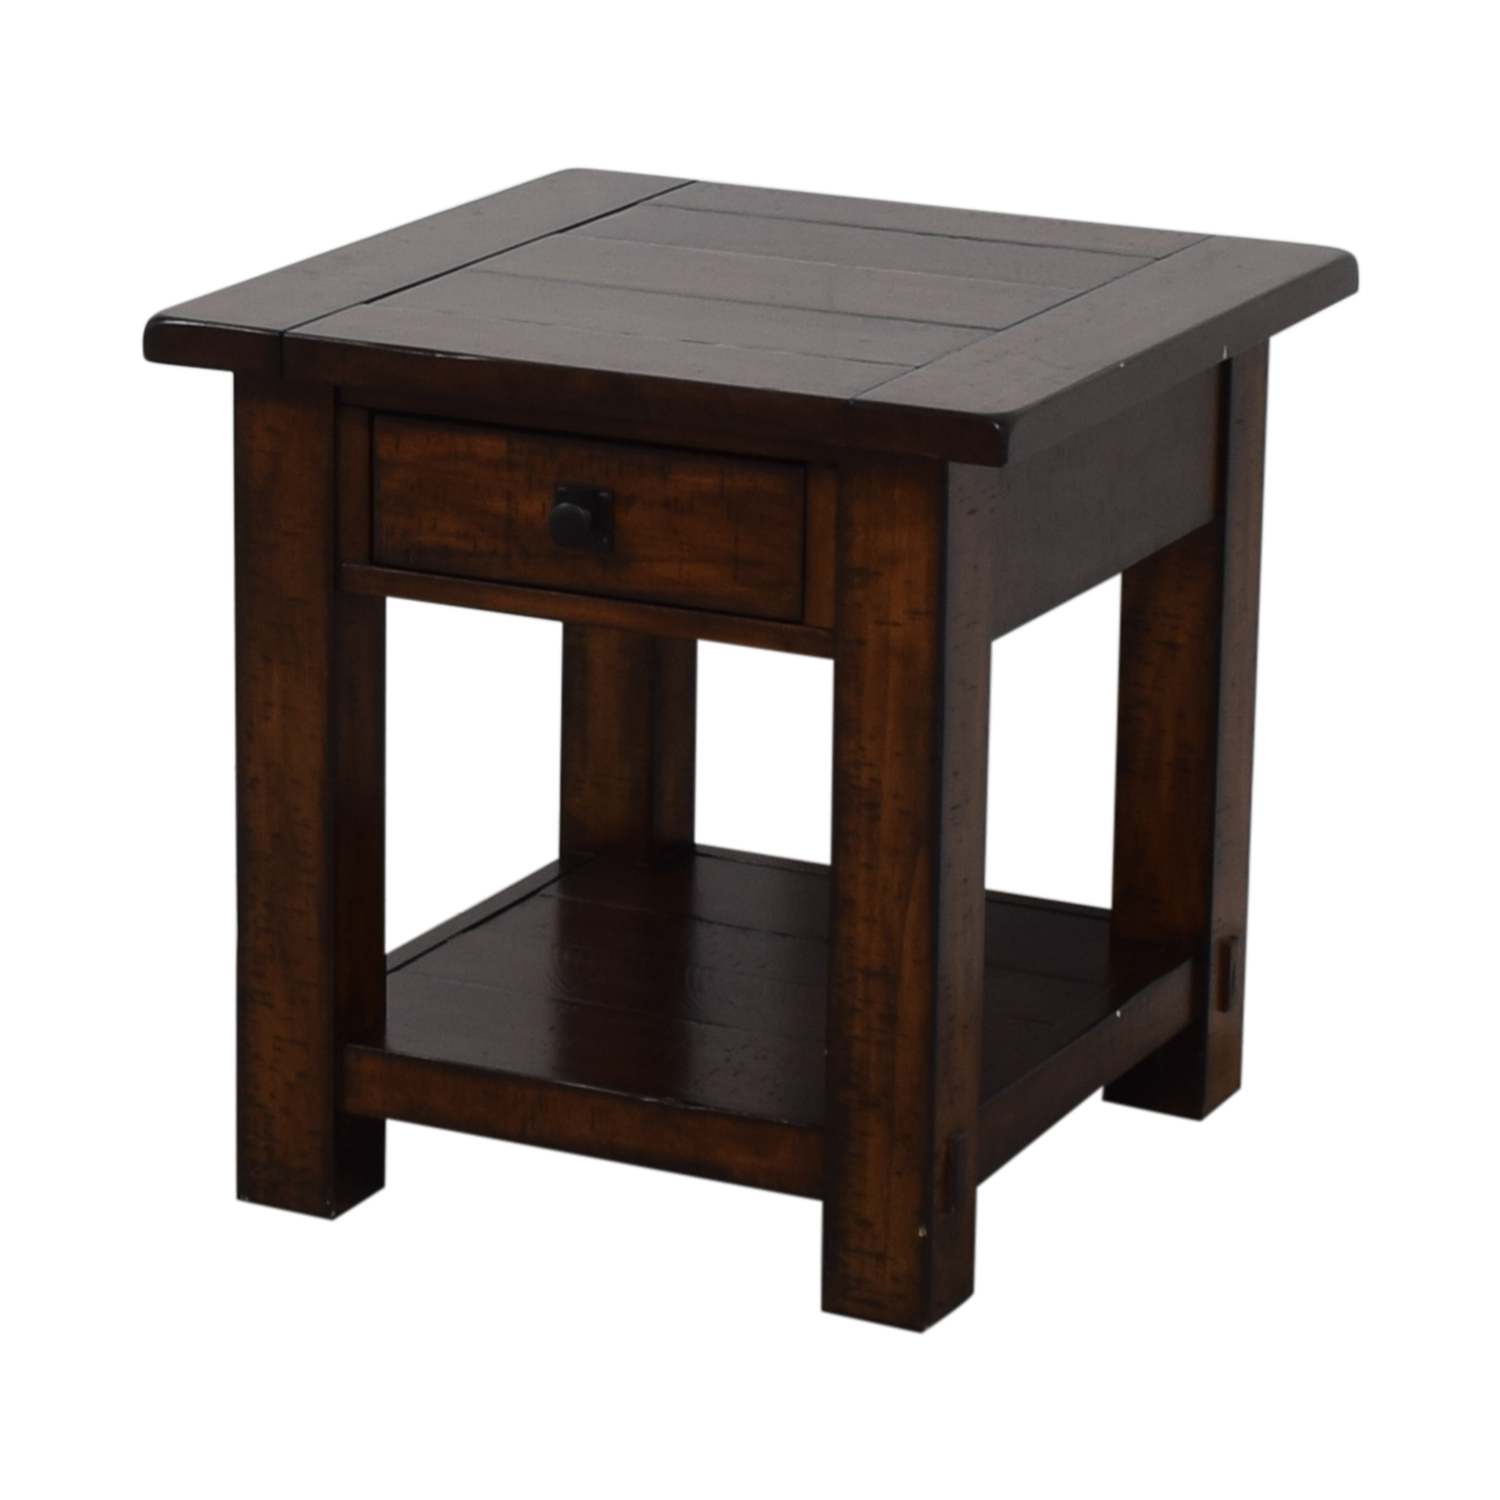 Pottery Barn Pottery Barn Benchwright Single Drawer Side Table nyc